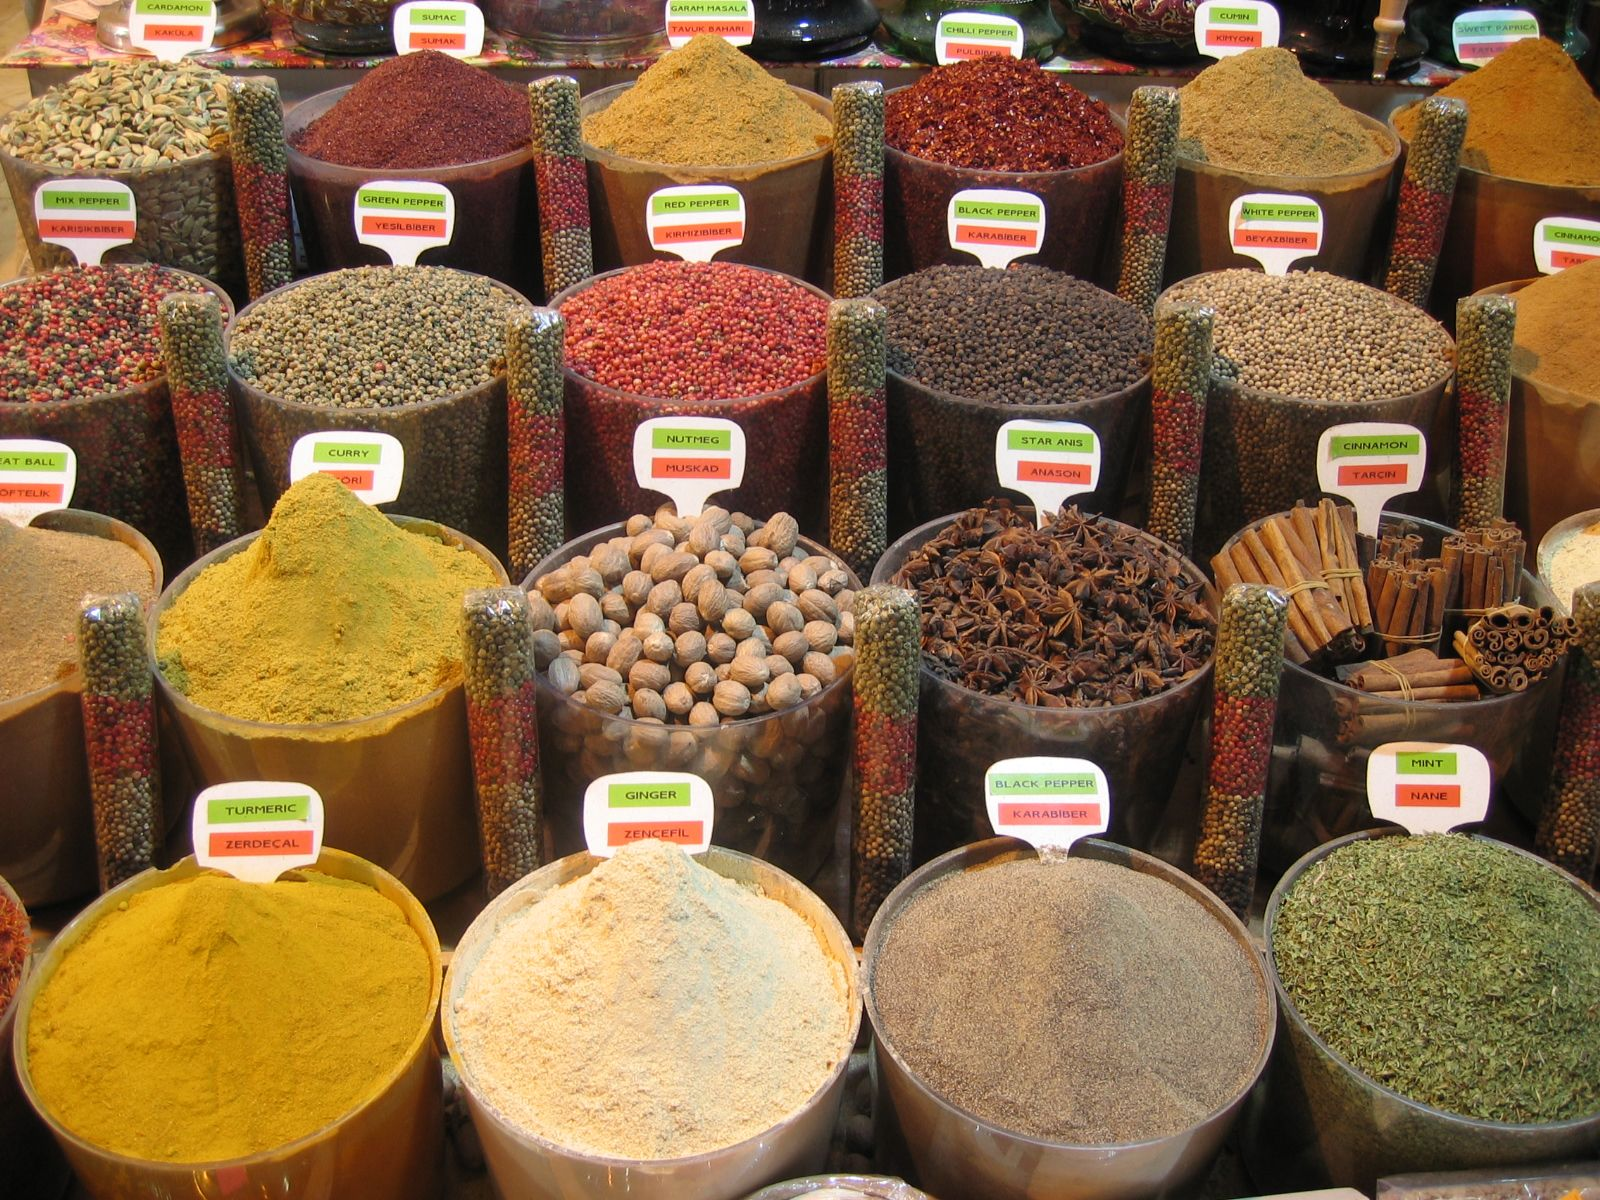 http://upload.wikimedia.org/wikipedia/commons/0/03/Spices_22078028.jpg